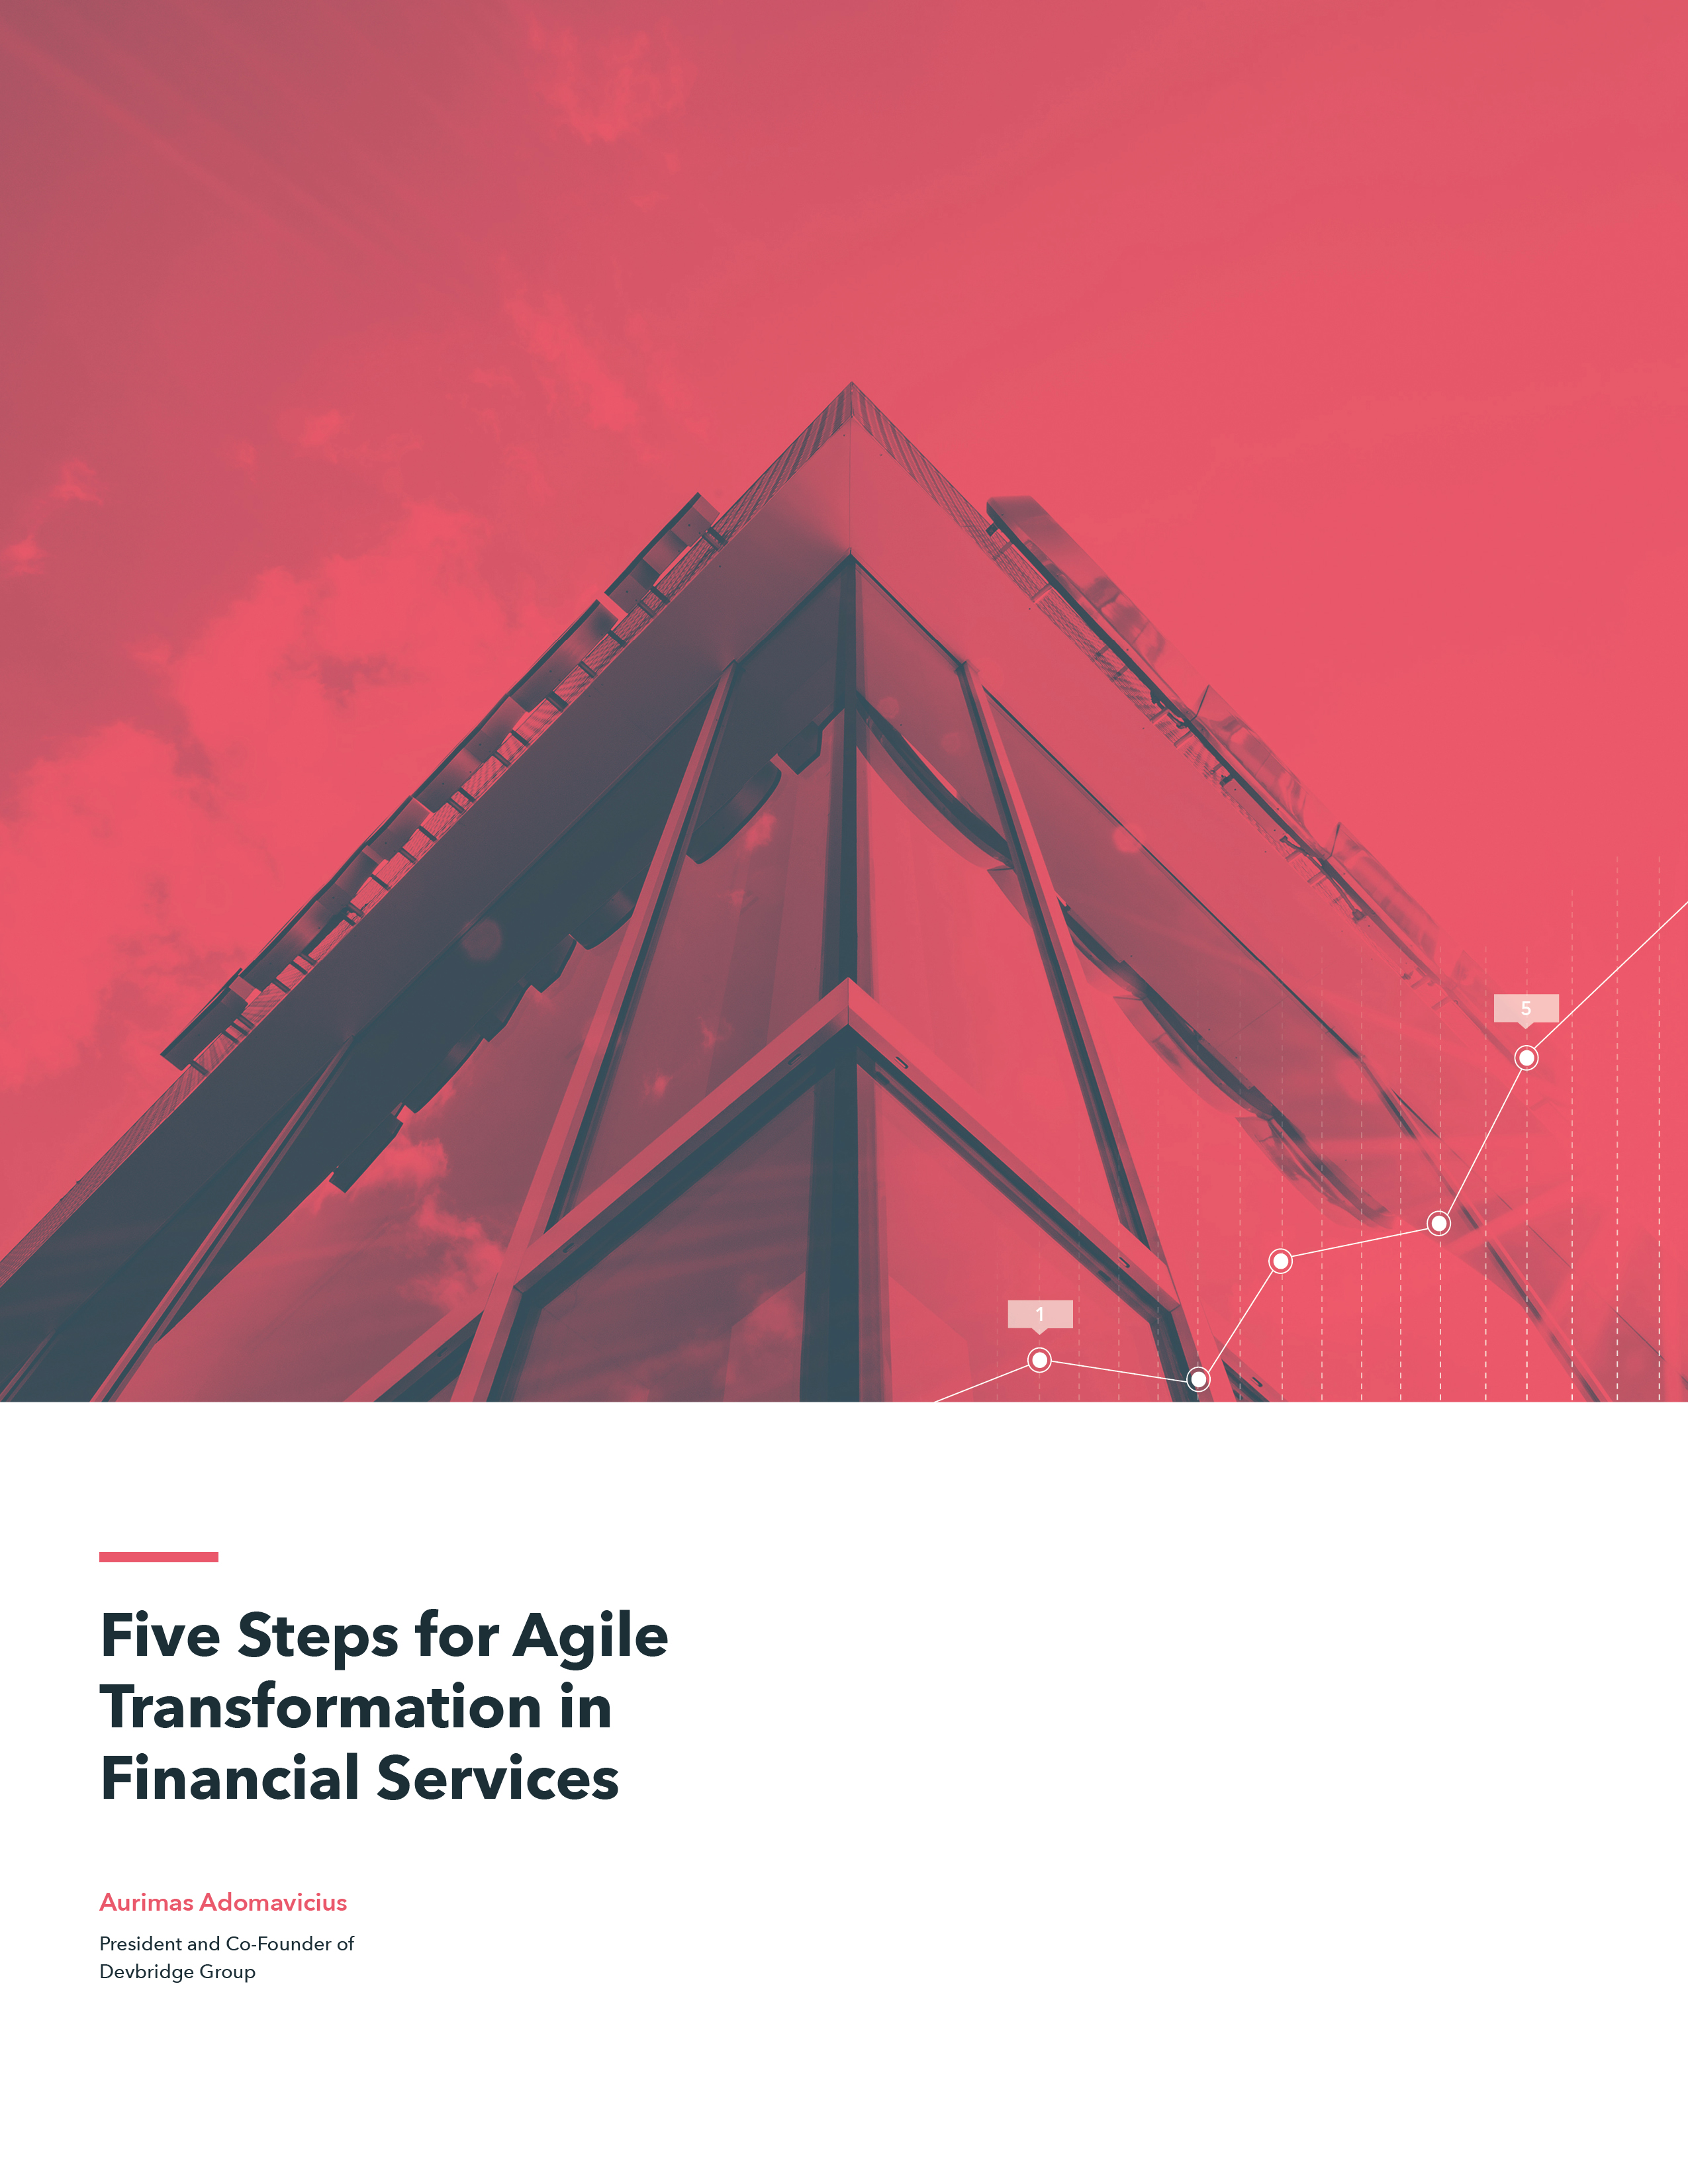 5 steps for agile transformation in financial services